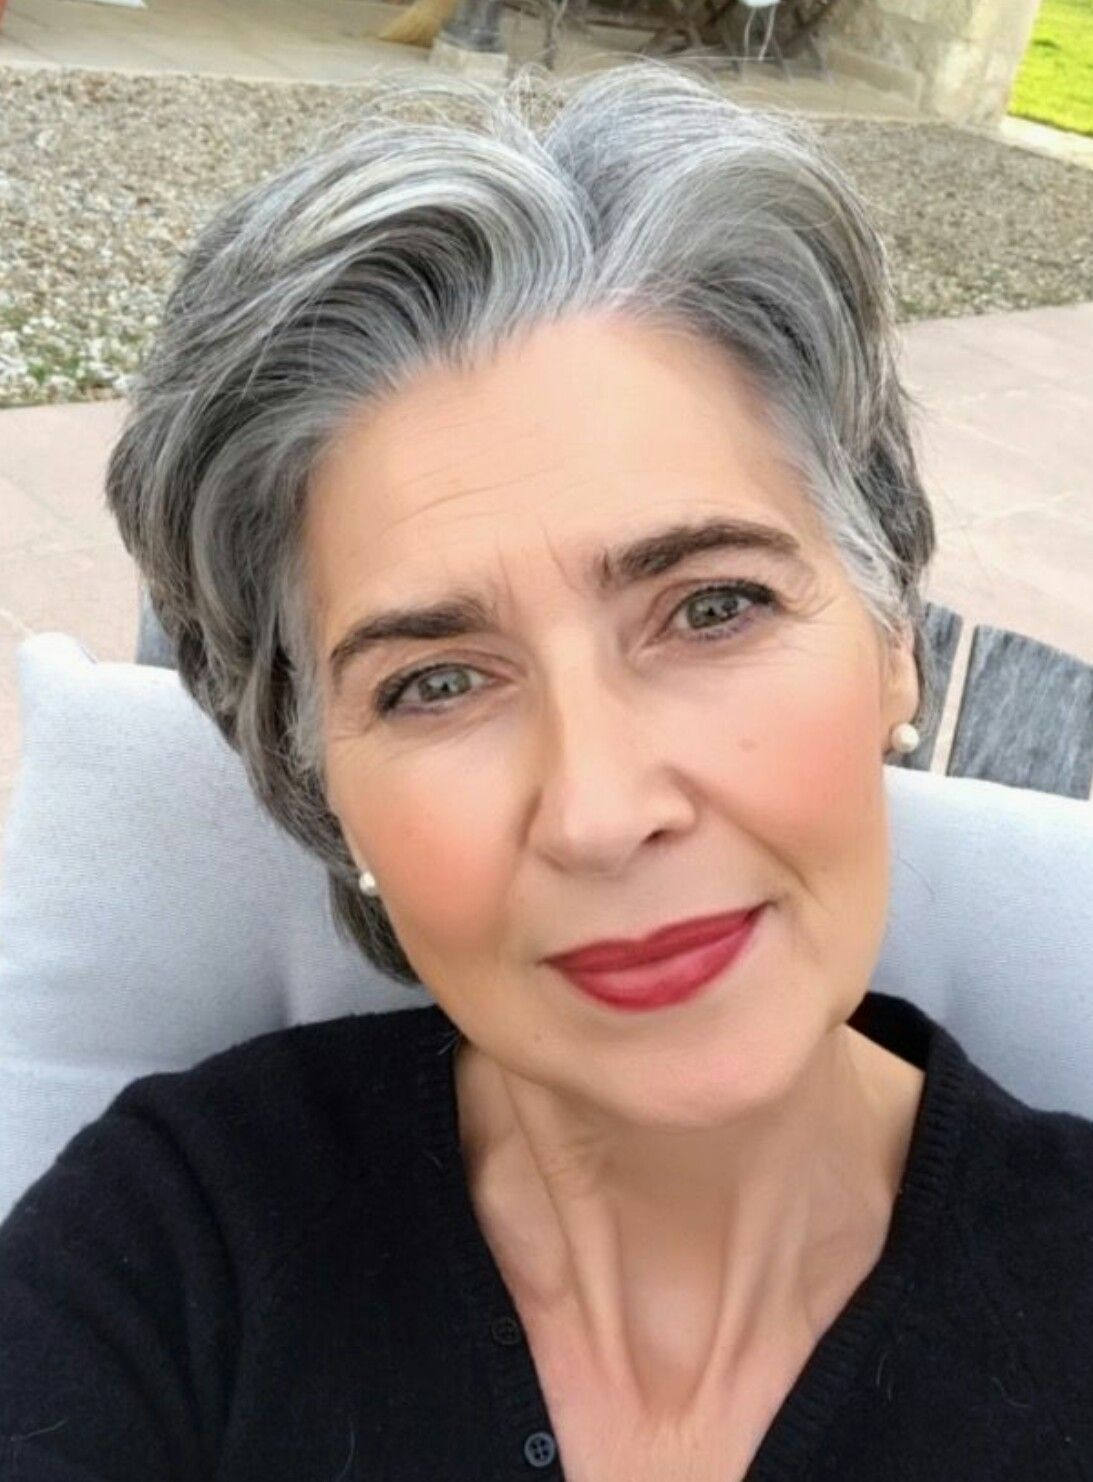 40 Professional Short Haircuts for Women Over 60 (Updated 2021) 8ce7ff44d740ca19d0f0e96ccd758c51